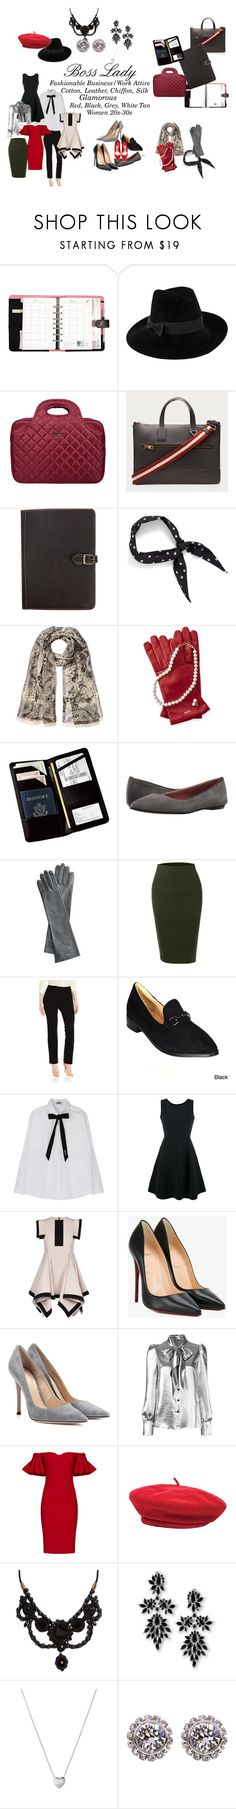 """""""Boss Lady"""" by stashaymadison on Polyvore featuring ACCO, Mademoiselle Slassi, Bally, Canyon Outback Leather, Halogen, Etro, Mark & Graham, Royce Leather, Summit by White Mountain and LE3NO"""